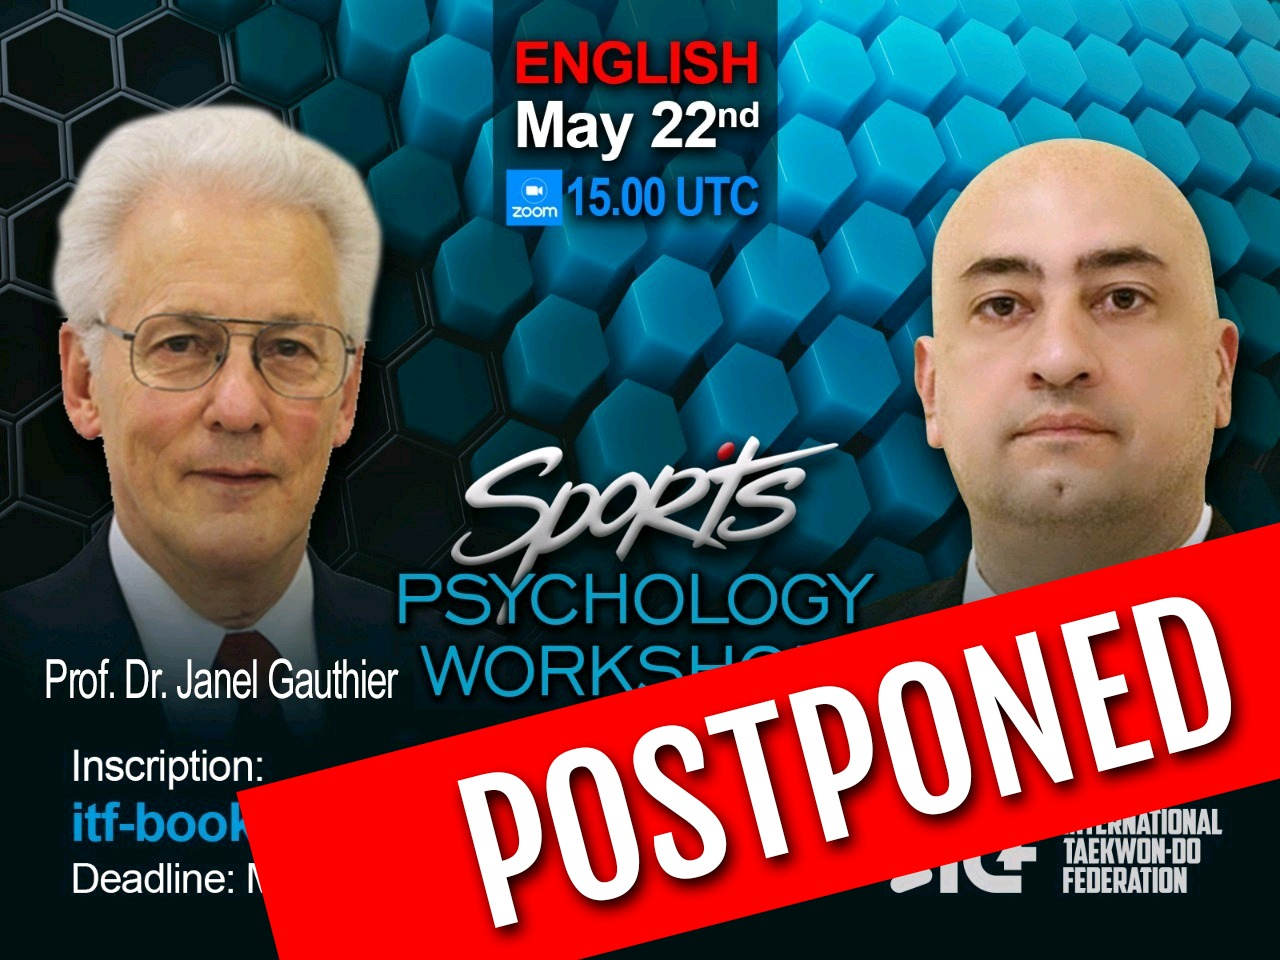 postponed PSICOWORKSHOP